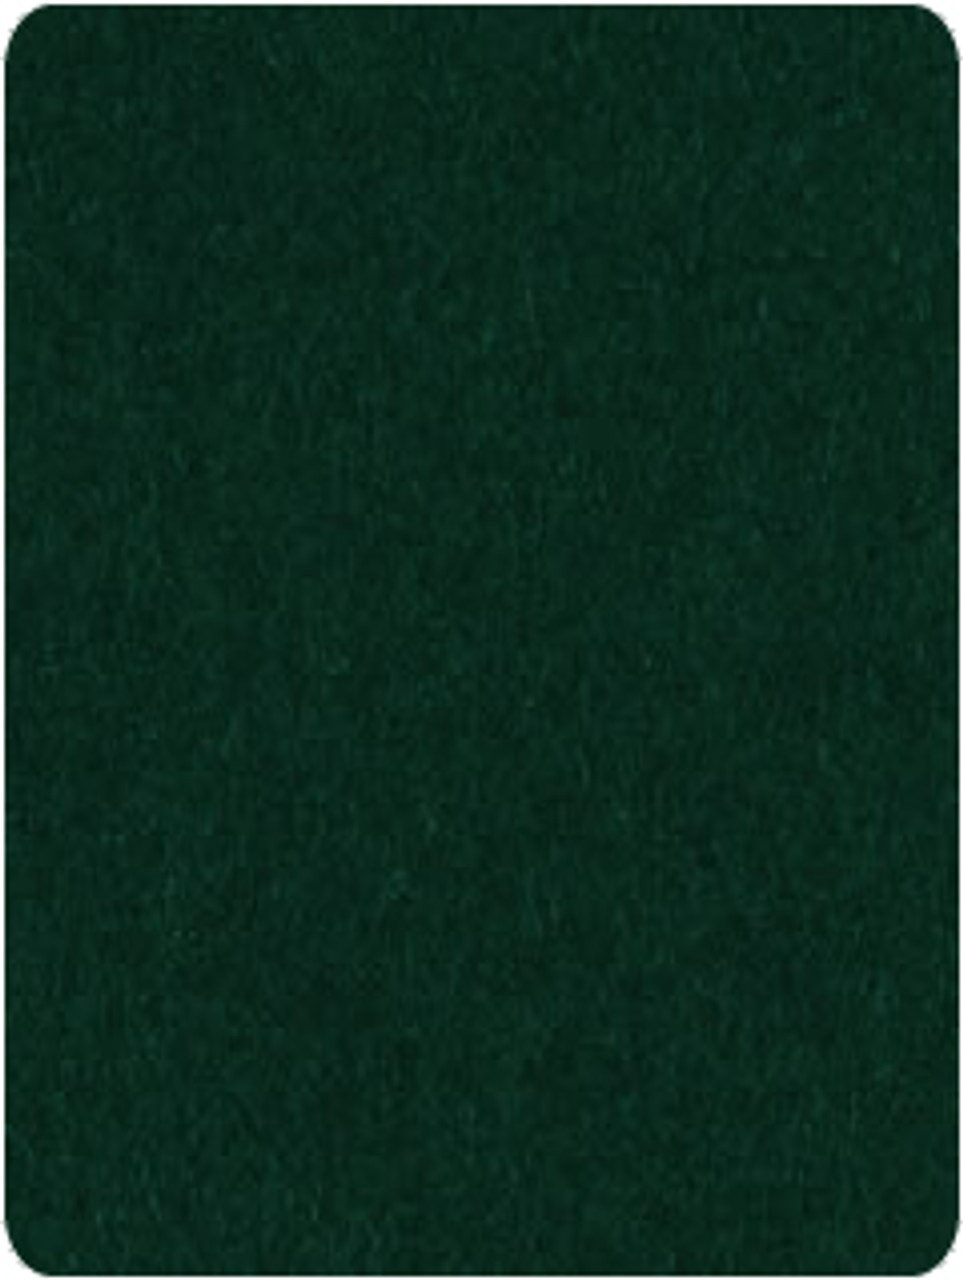 Invitational 7' Dark Green Table Felt